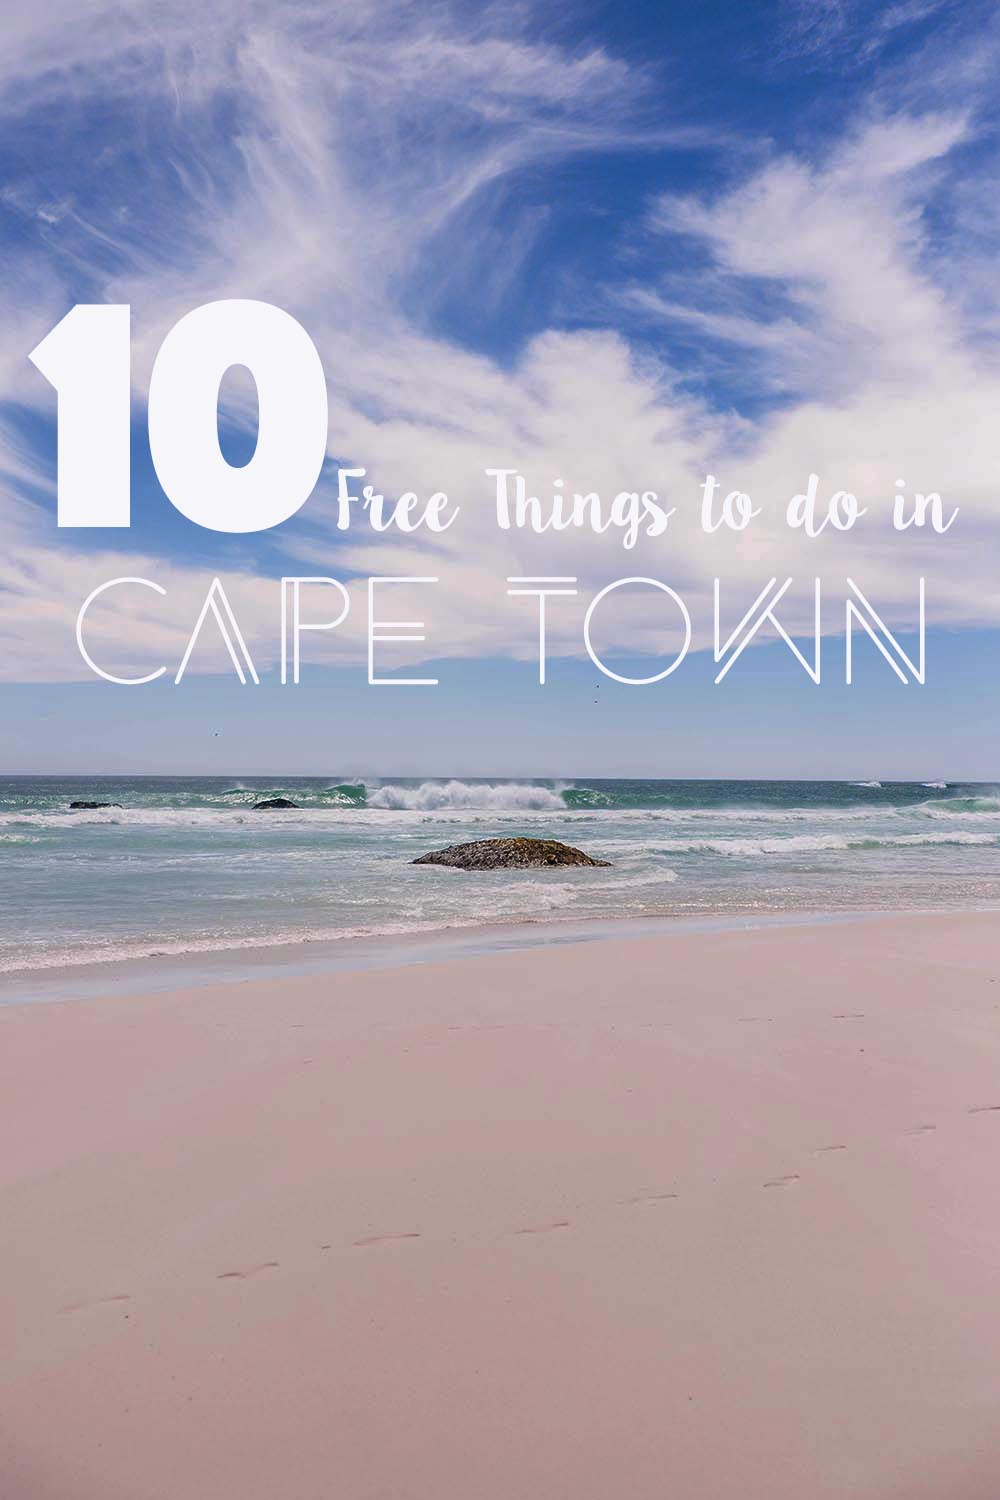 Boulder in the ocean on the beach with waves crashing with text overlay - 10 free things to do in Cape Town.